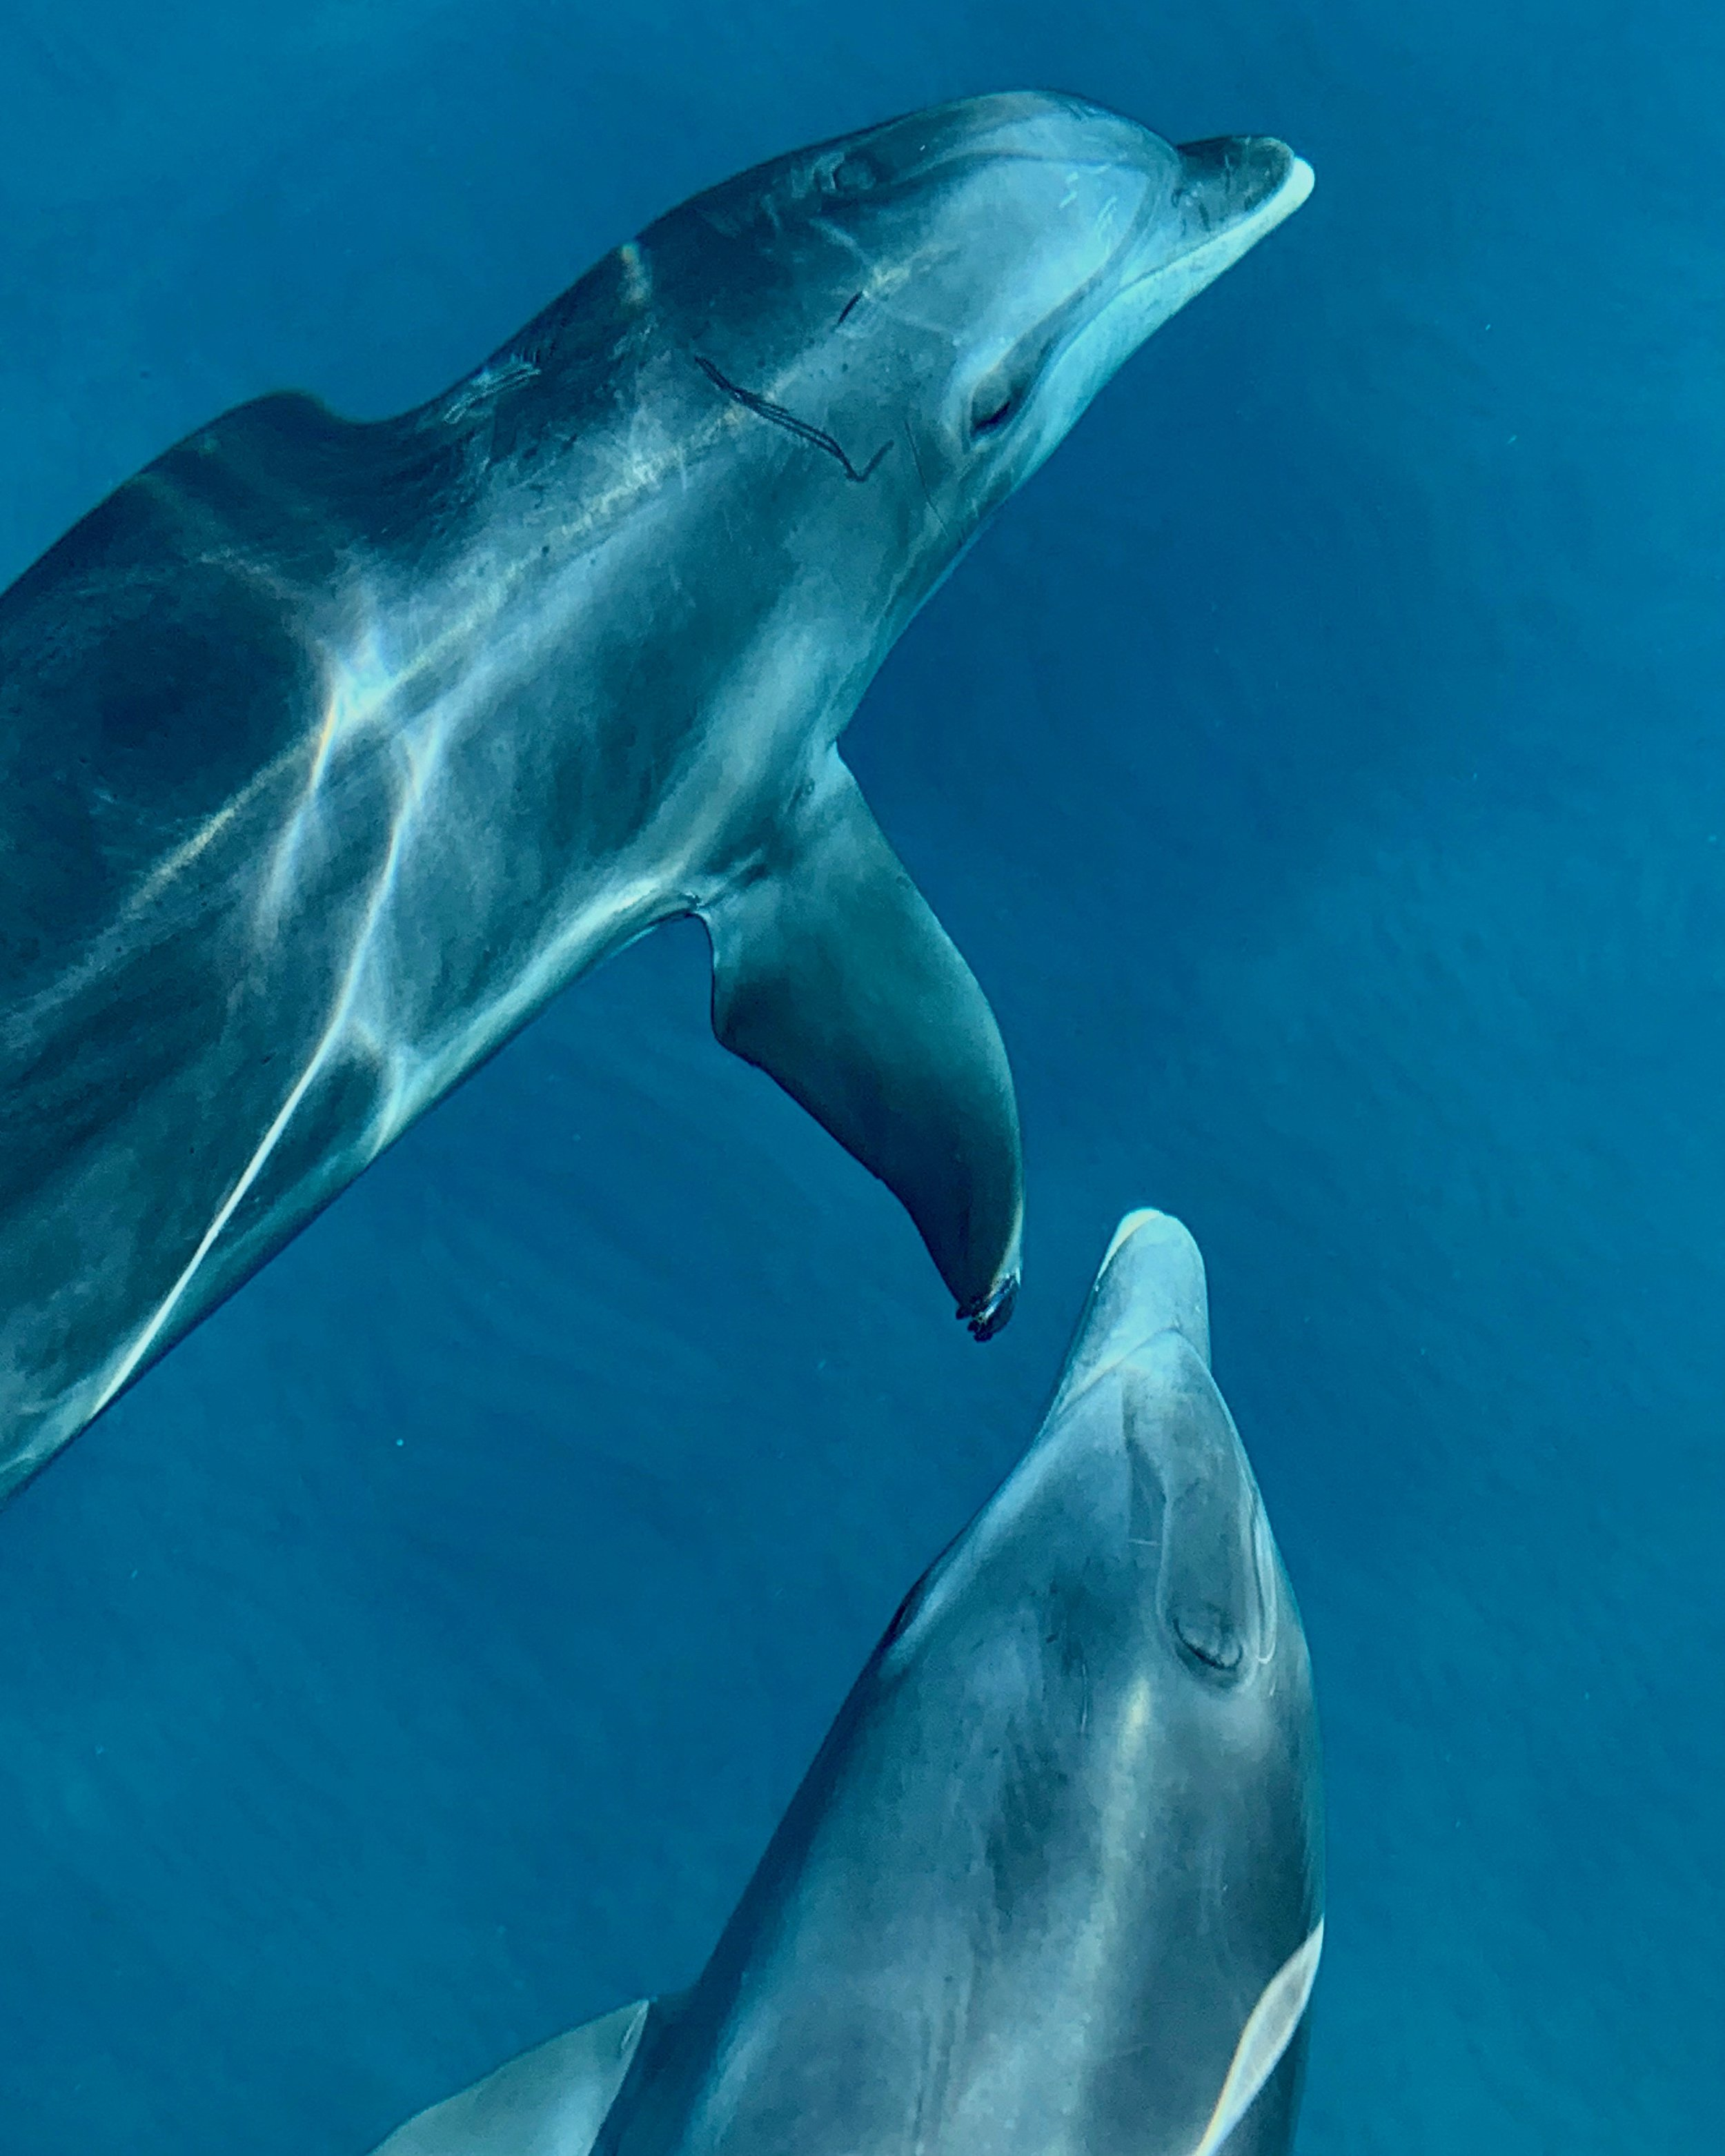 IMG_5020 dolphins off bow 2.jpg